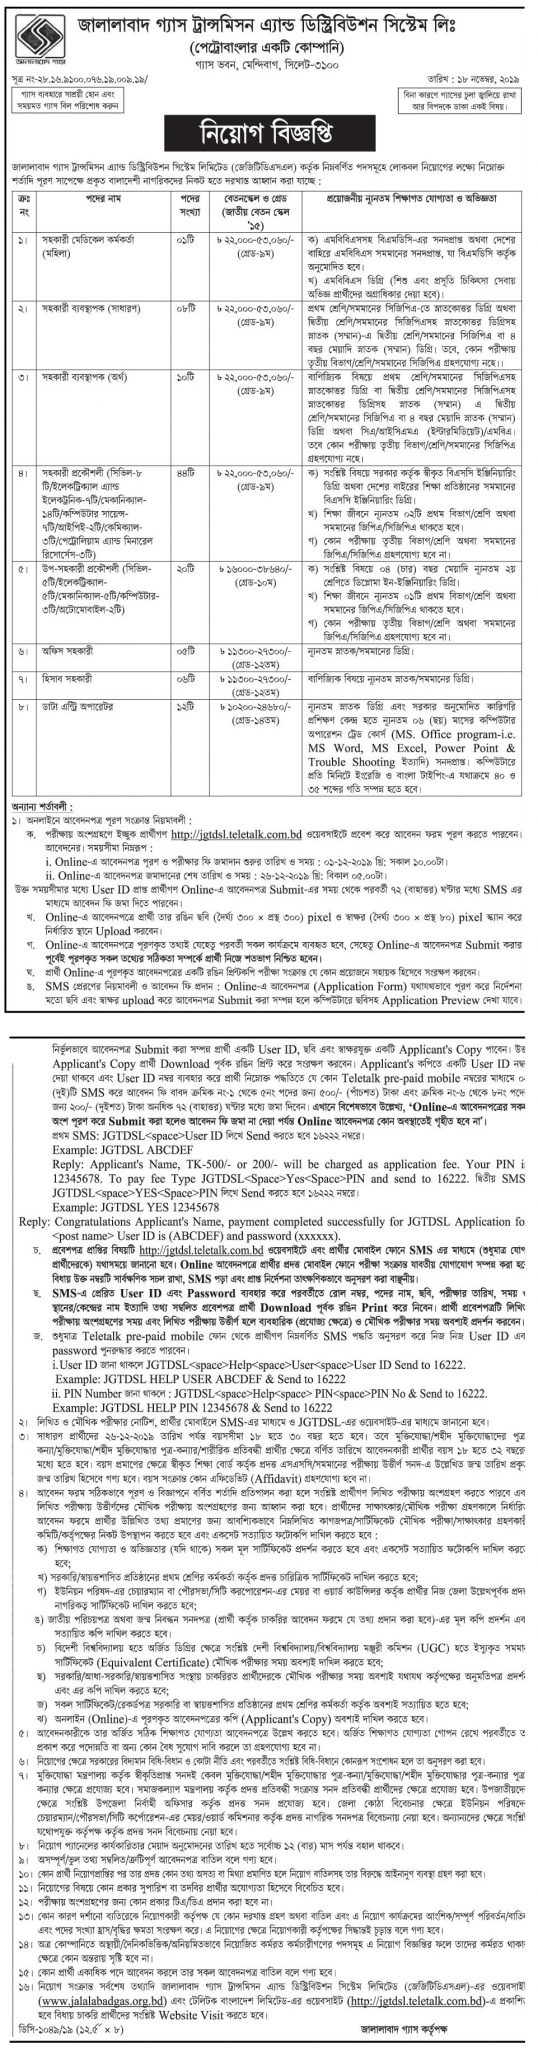 Jalalabad Gas Transmission and Distribution Company Ltd Job Circular 2019